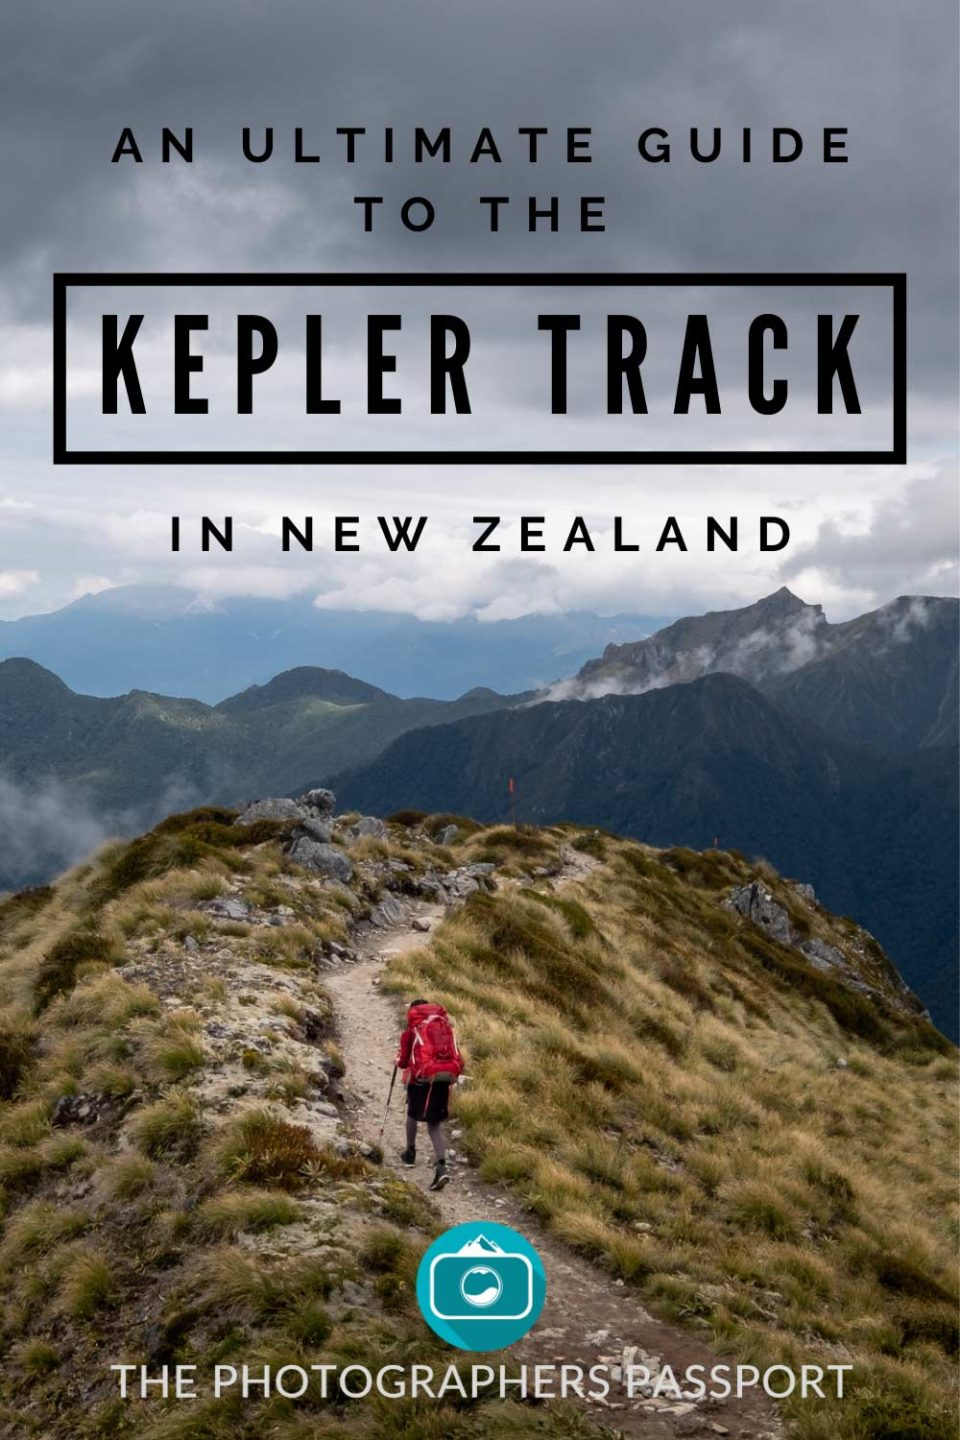 Check out this amazing multi-day hike in the Fiordland region of New Zealand's South Island. The Kepler Track is an unbelievable experience you will never forget. This complete guide explains all that you need to know, plus includes some amazing photography of the walk that is sure to get you inspired!